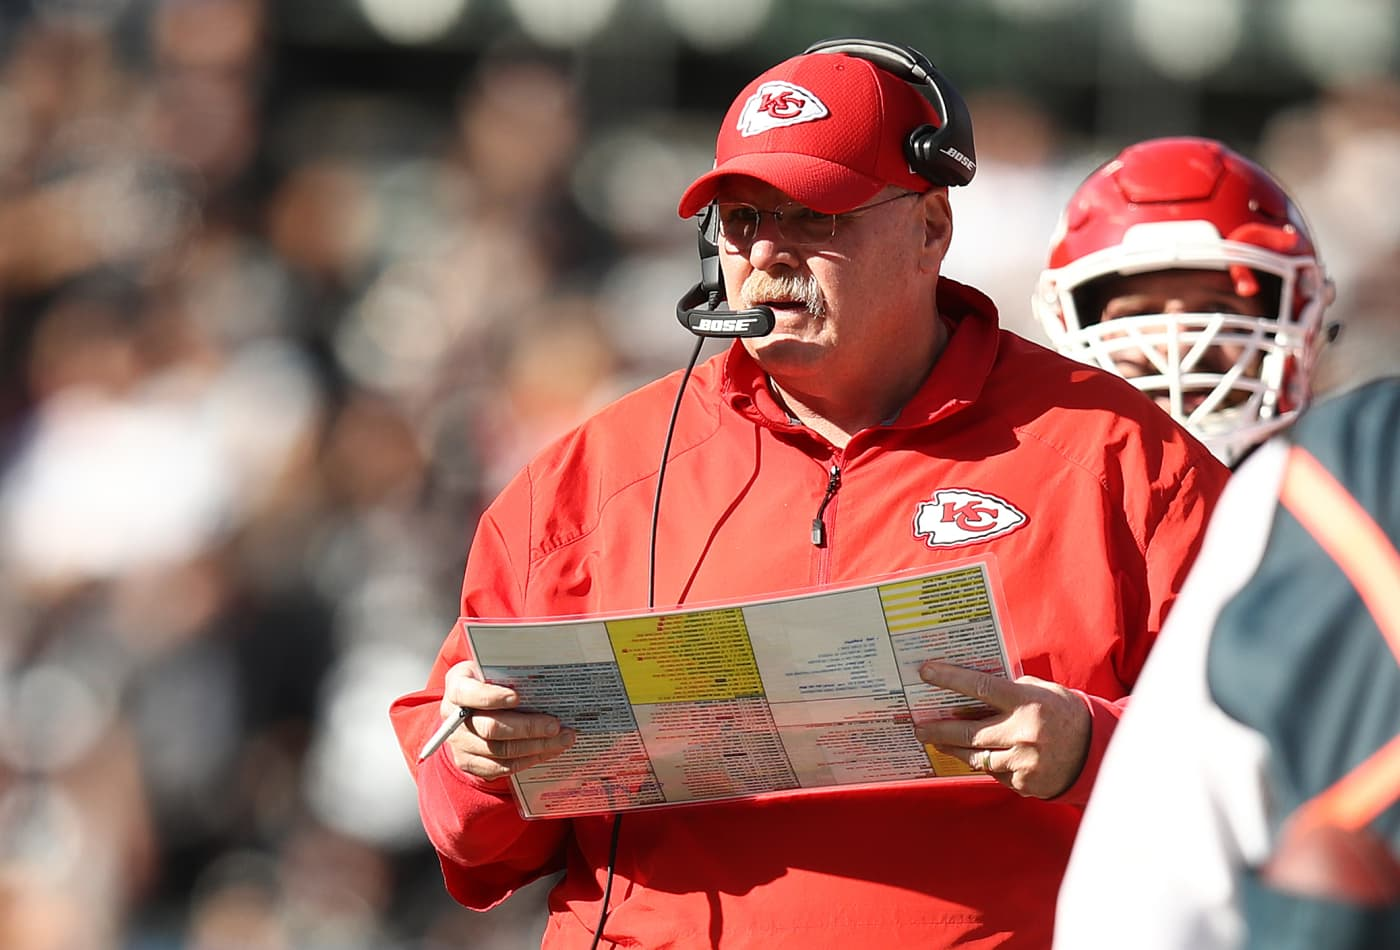 Chiefs coach Andy Reid still drives the car his dad bought for $25 in the 1940s